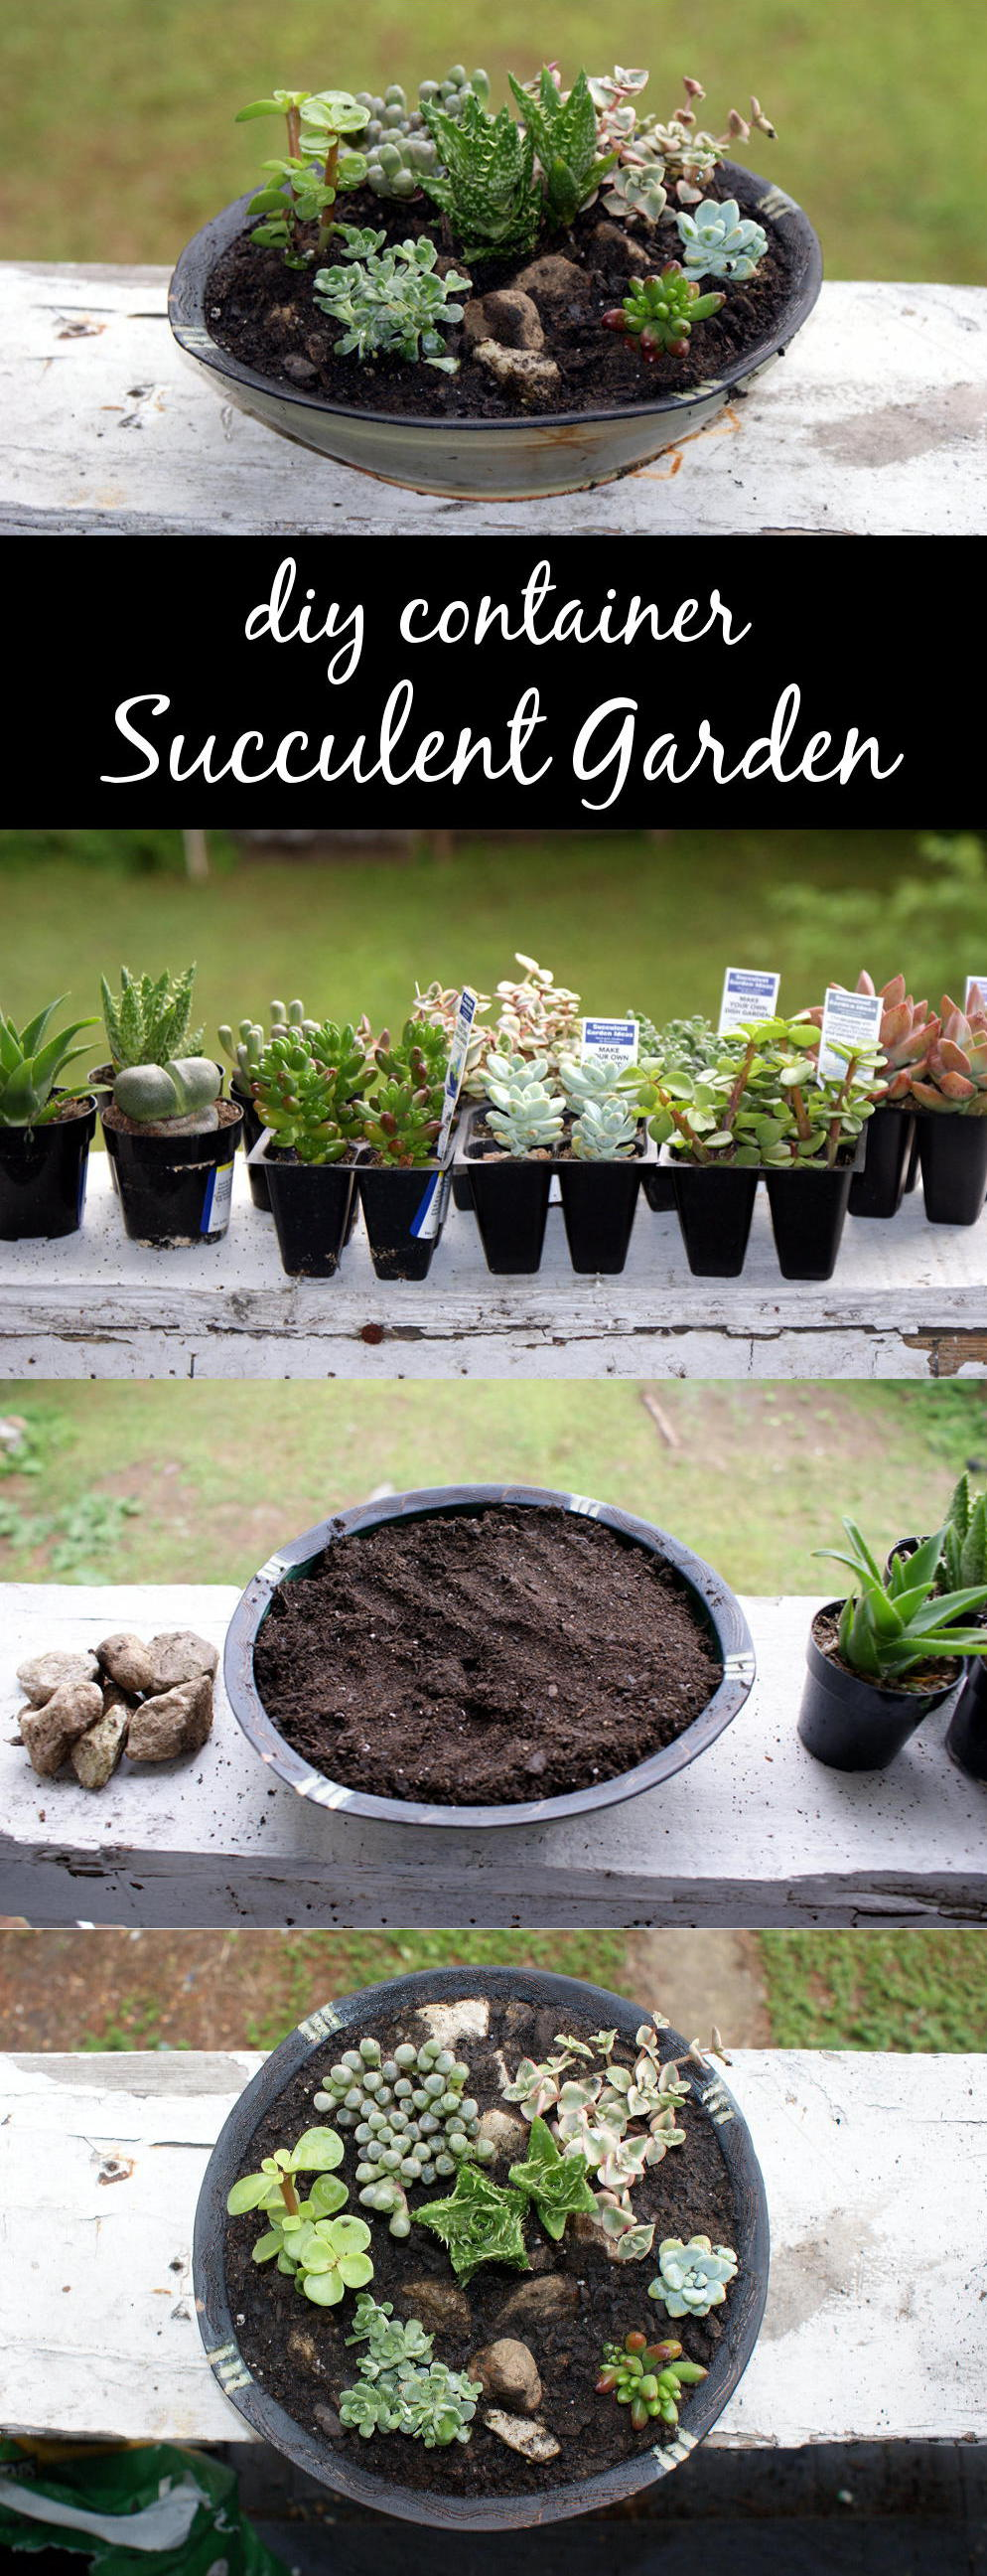 Craft this DIY succulent container garden for Mother's Day! These easy to care for and easy to make succulent container gardens make wonderful homemade Mother's Day gifts!